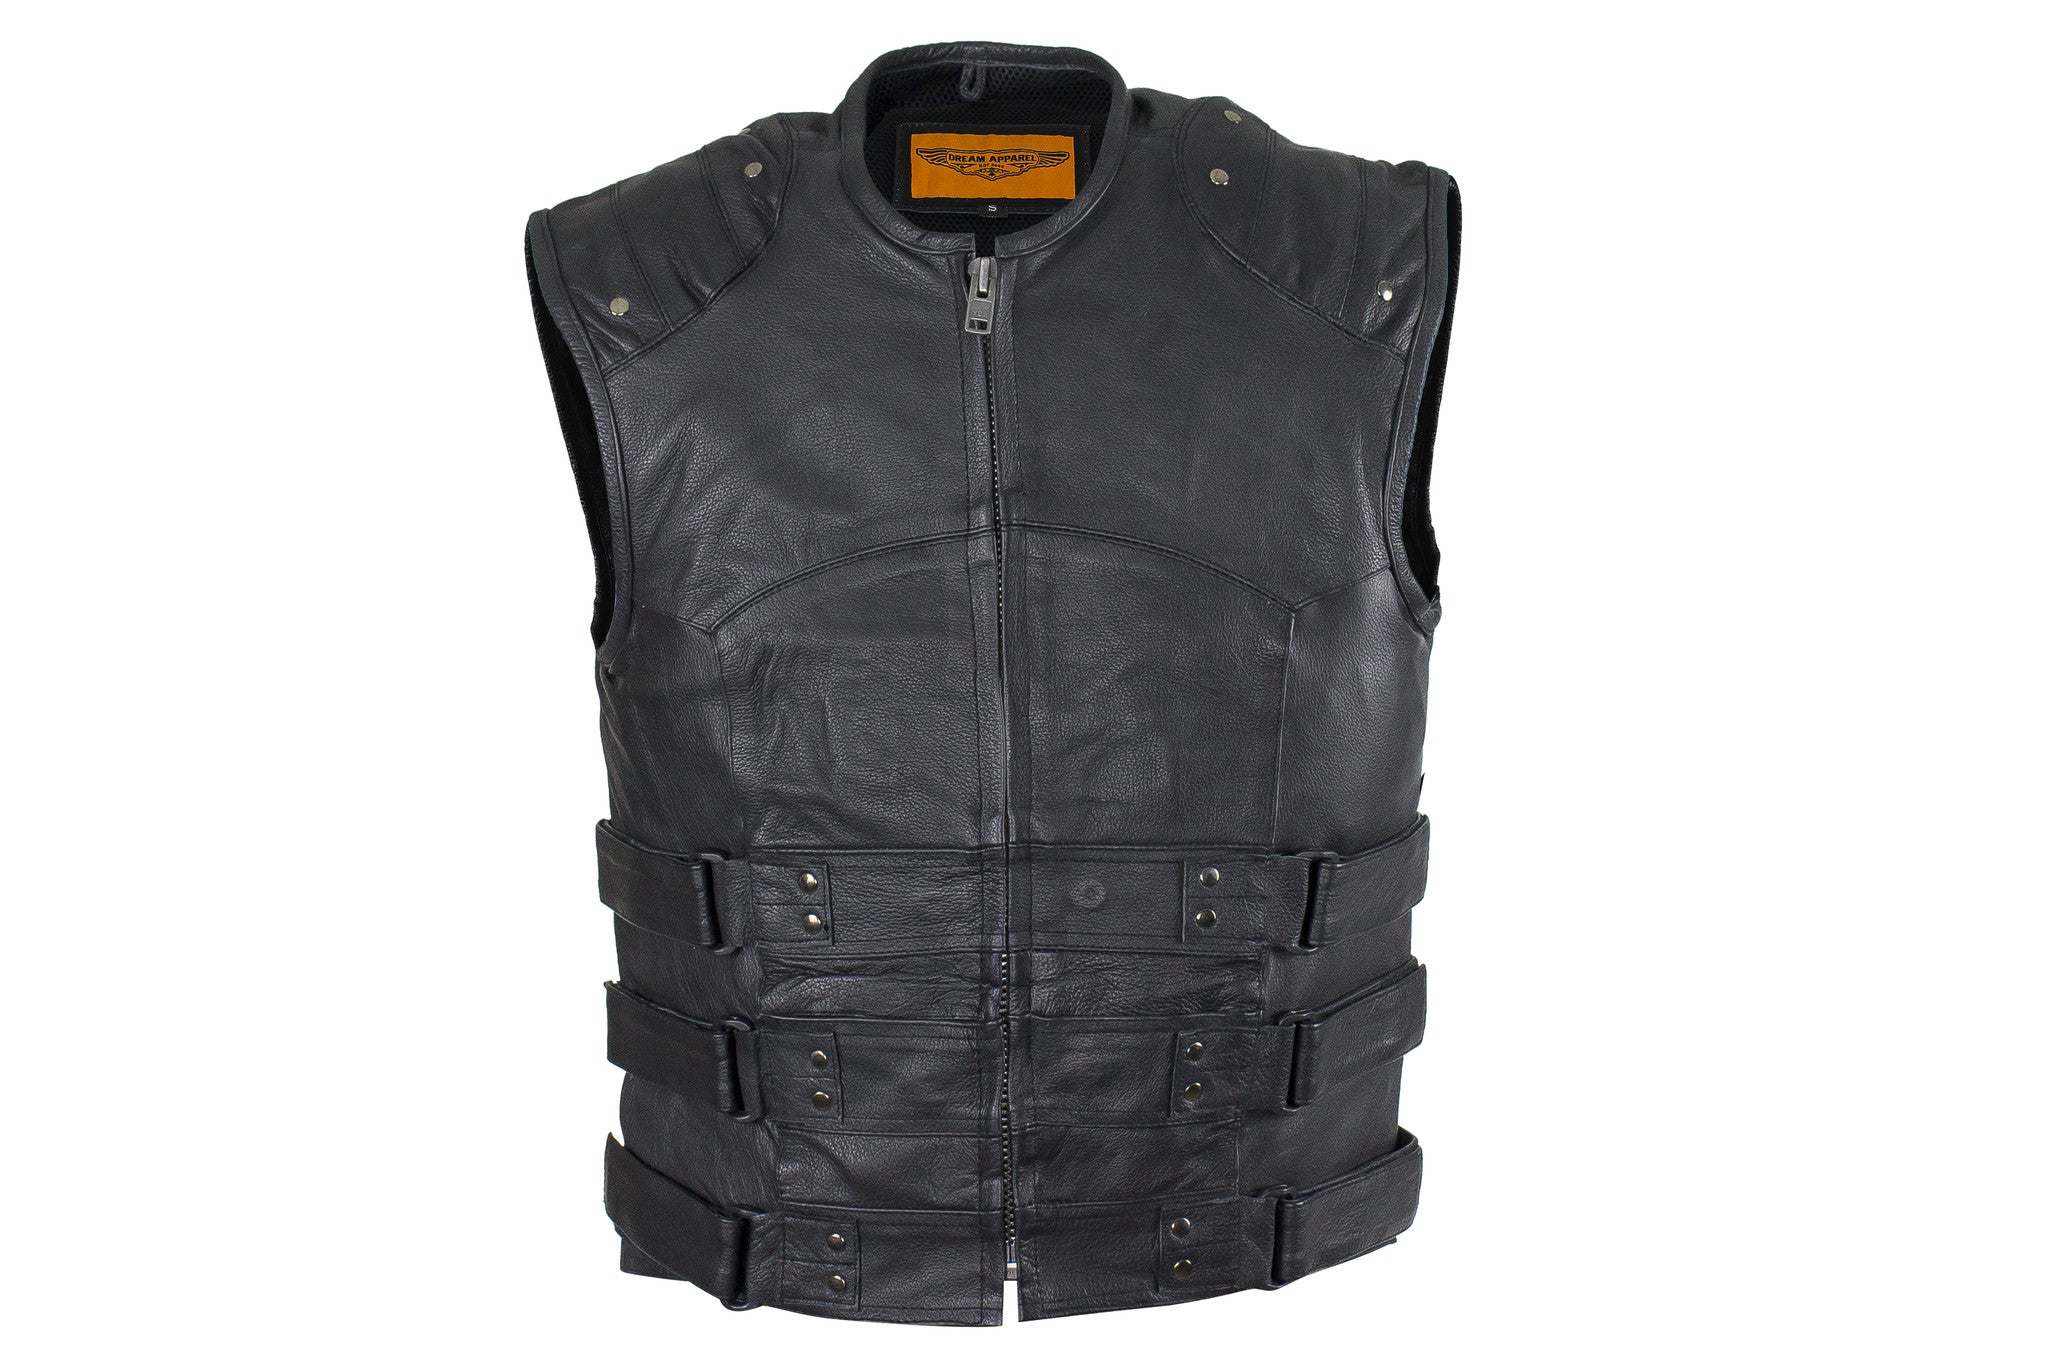 Men/'s SWAT Tactical Motorcycle Biker Leather vest with two concealed gun pockets